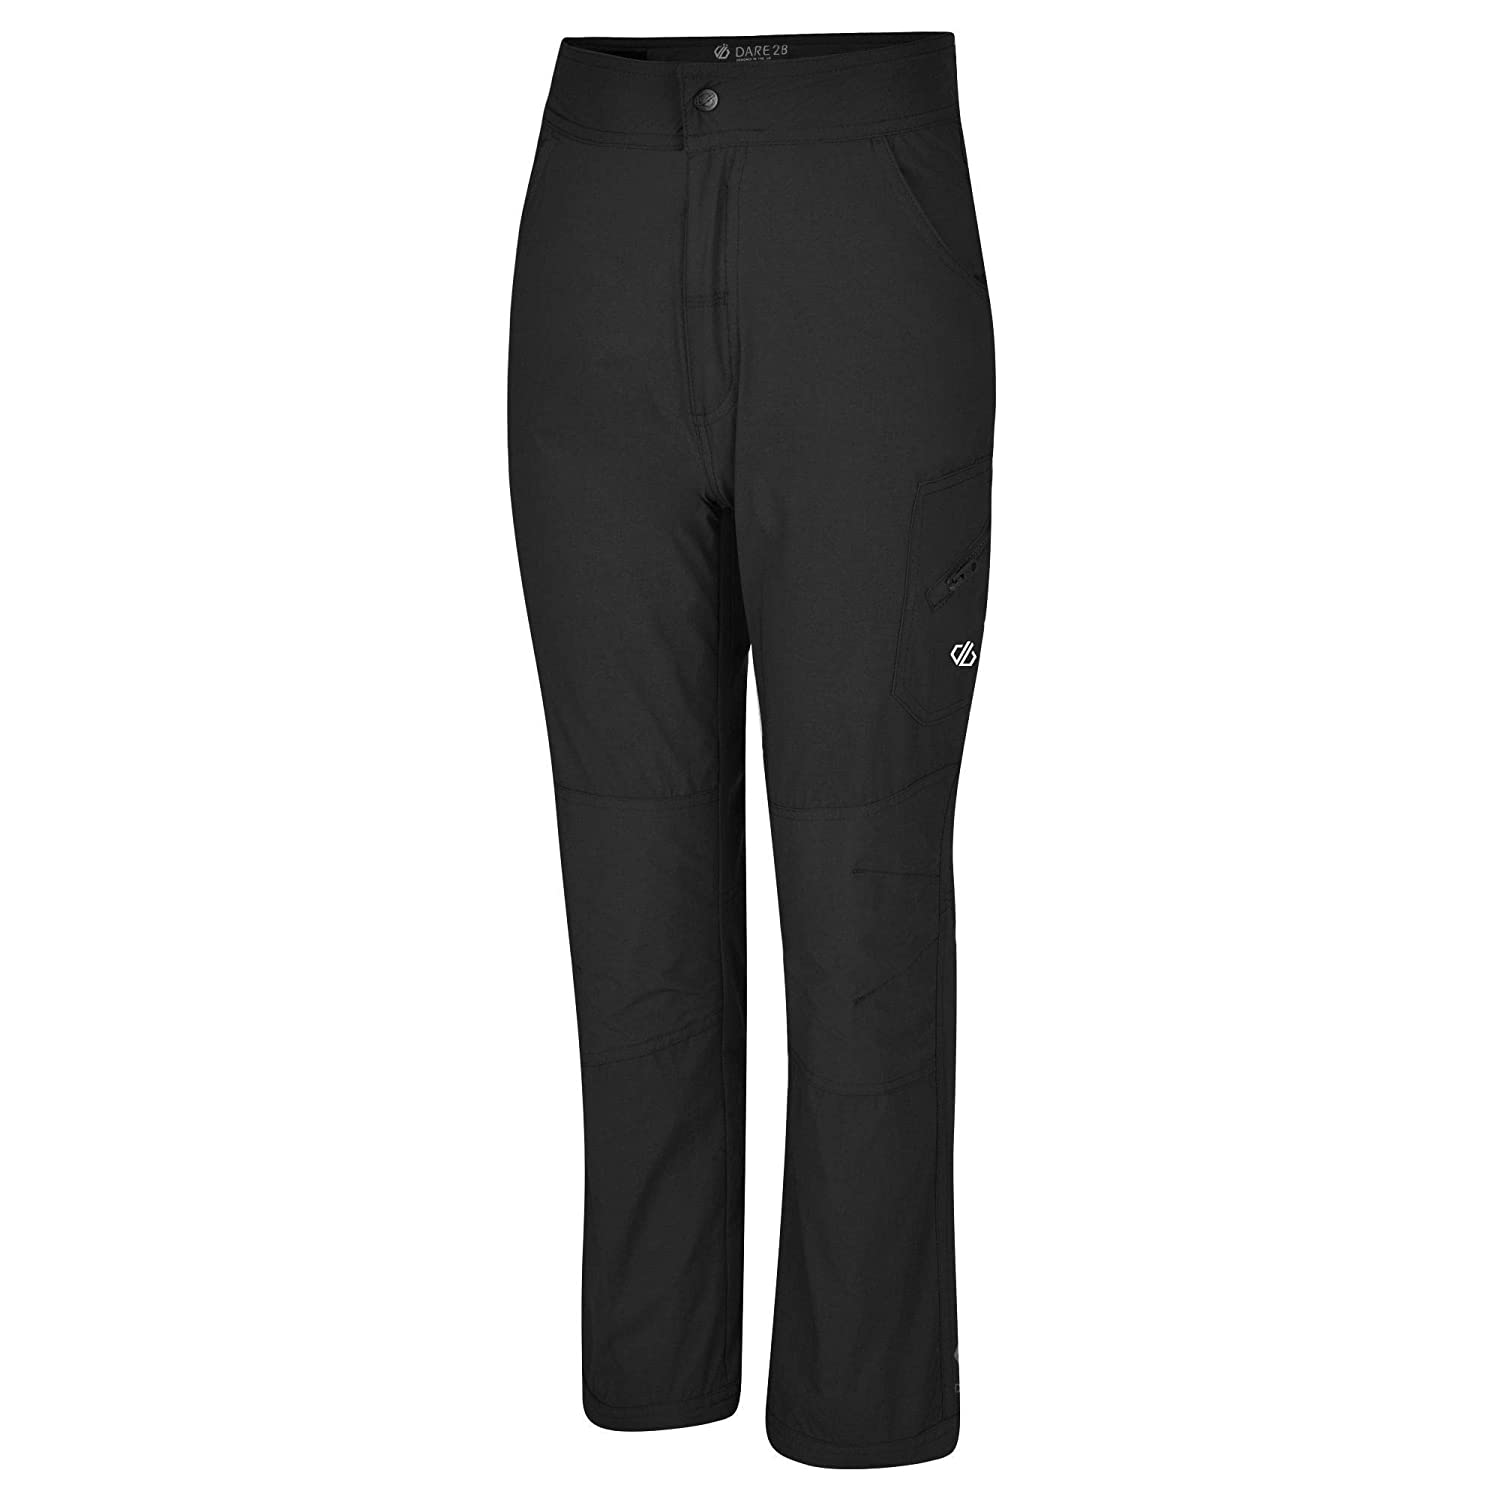 Dare 2b Childrens Reprise Lightweight Water Repellent Quick Drying Trousers